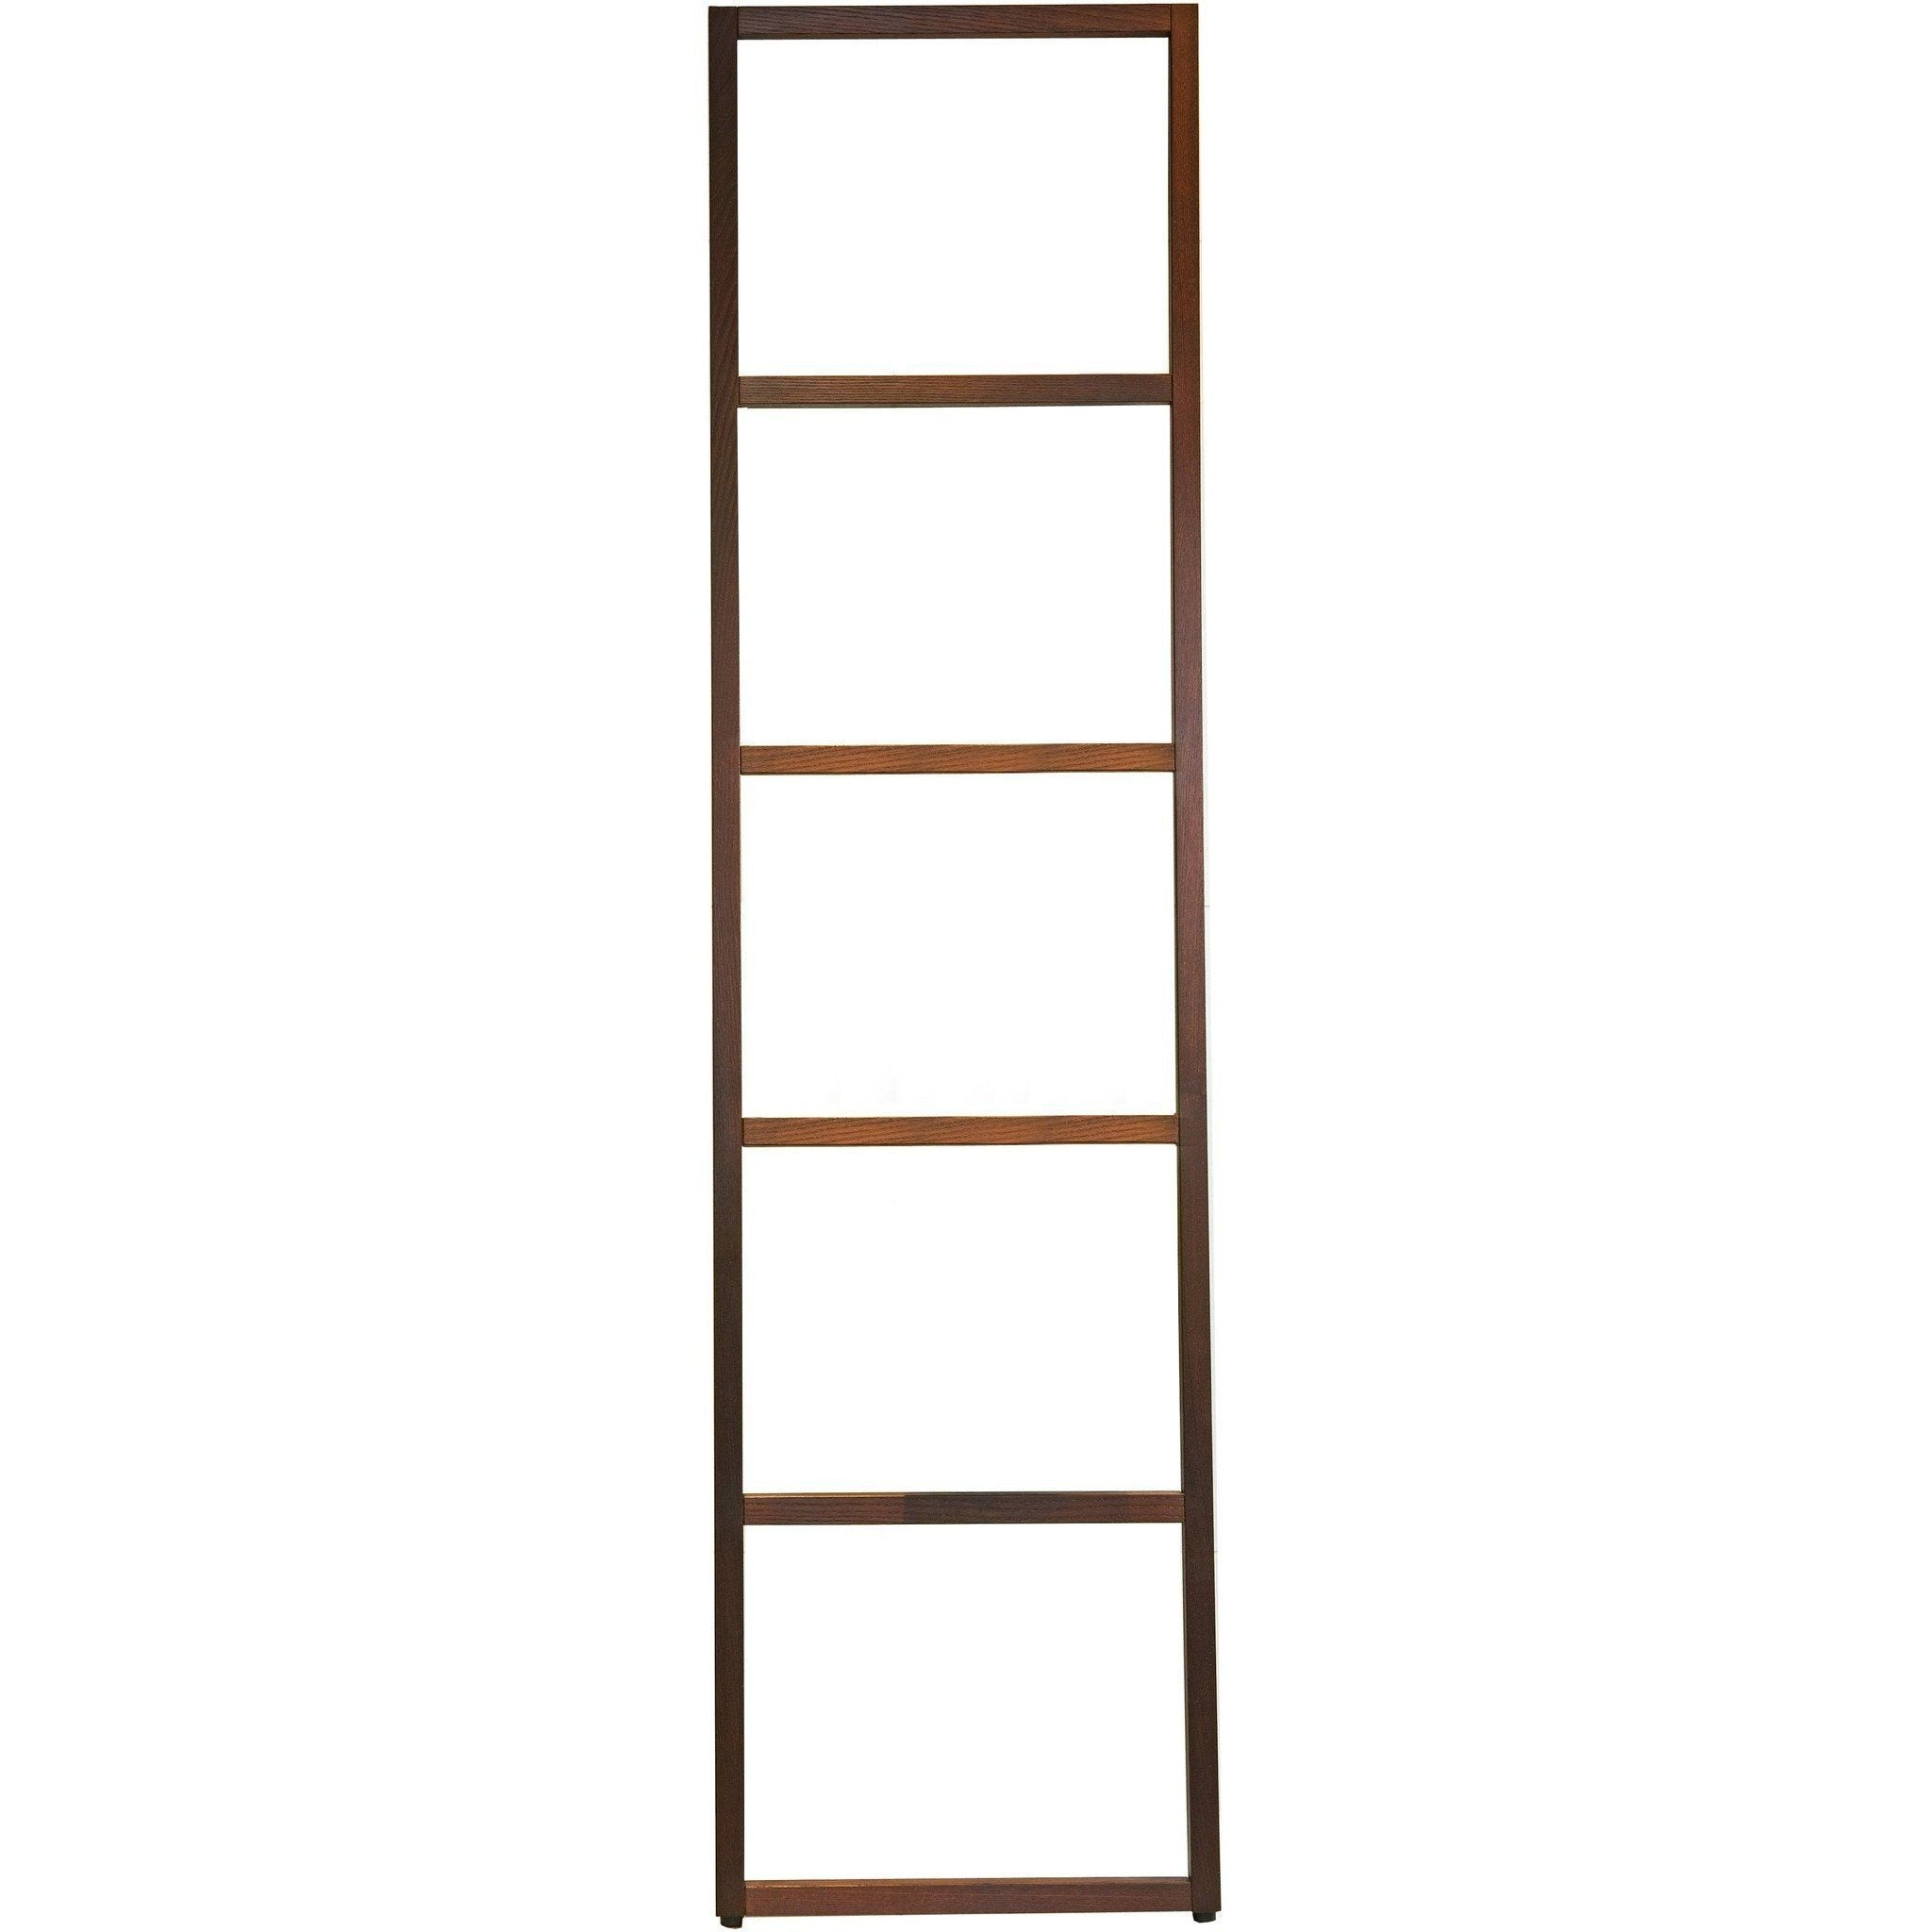 DWBA Free Standing Towel Rack Ladder for Bath Spa Towel Hanger, 16.9 inch Width